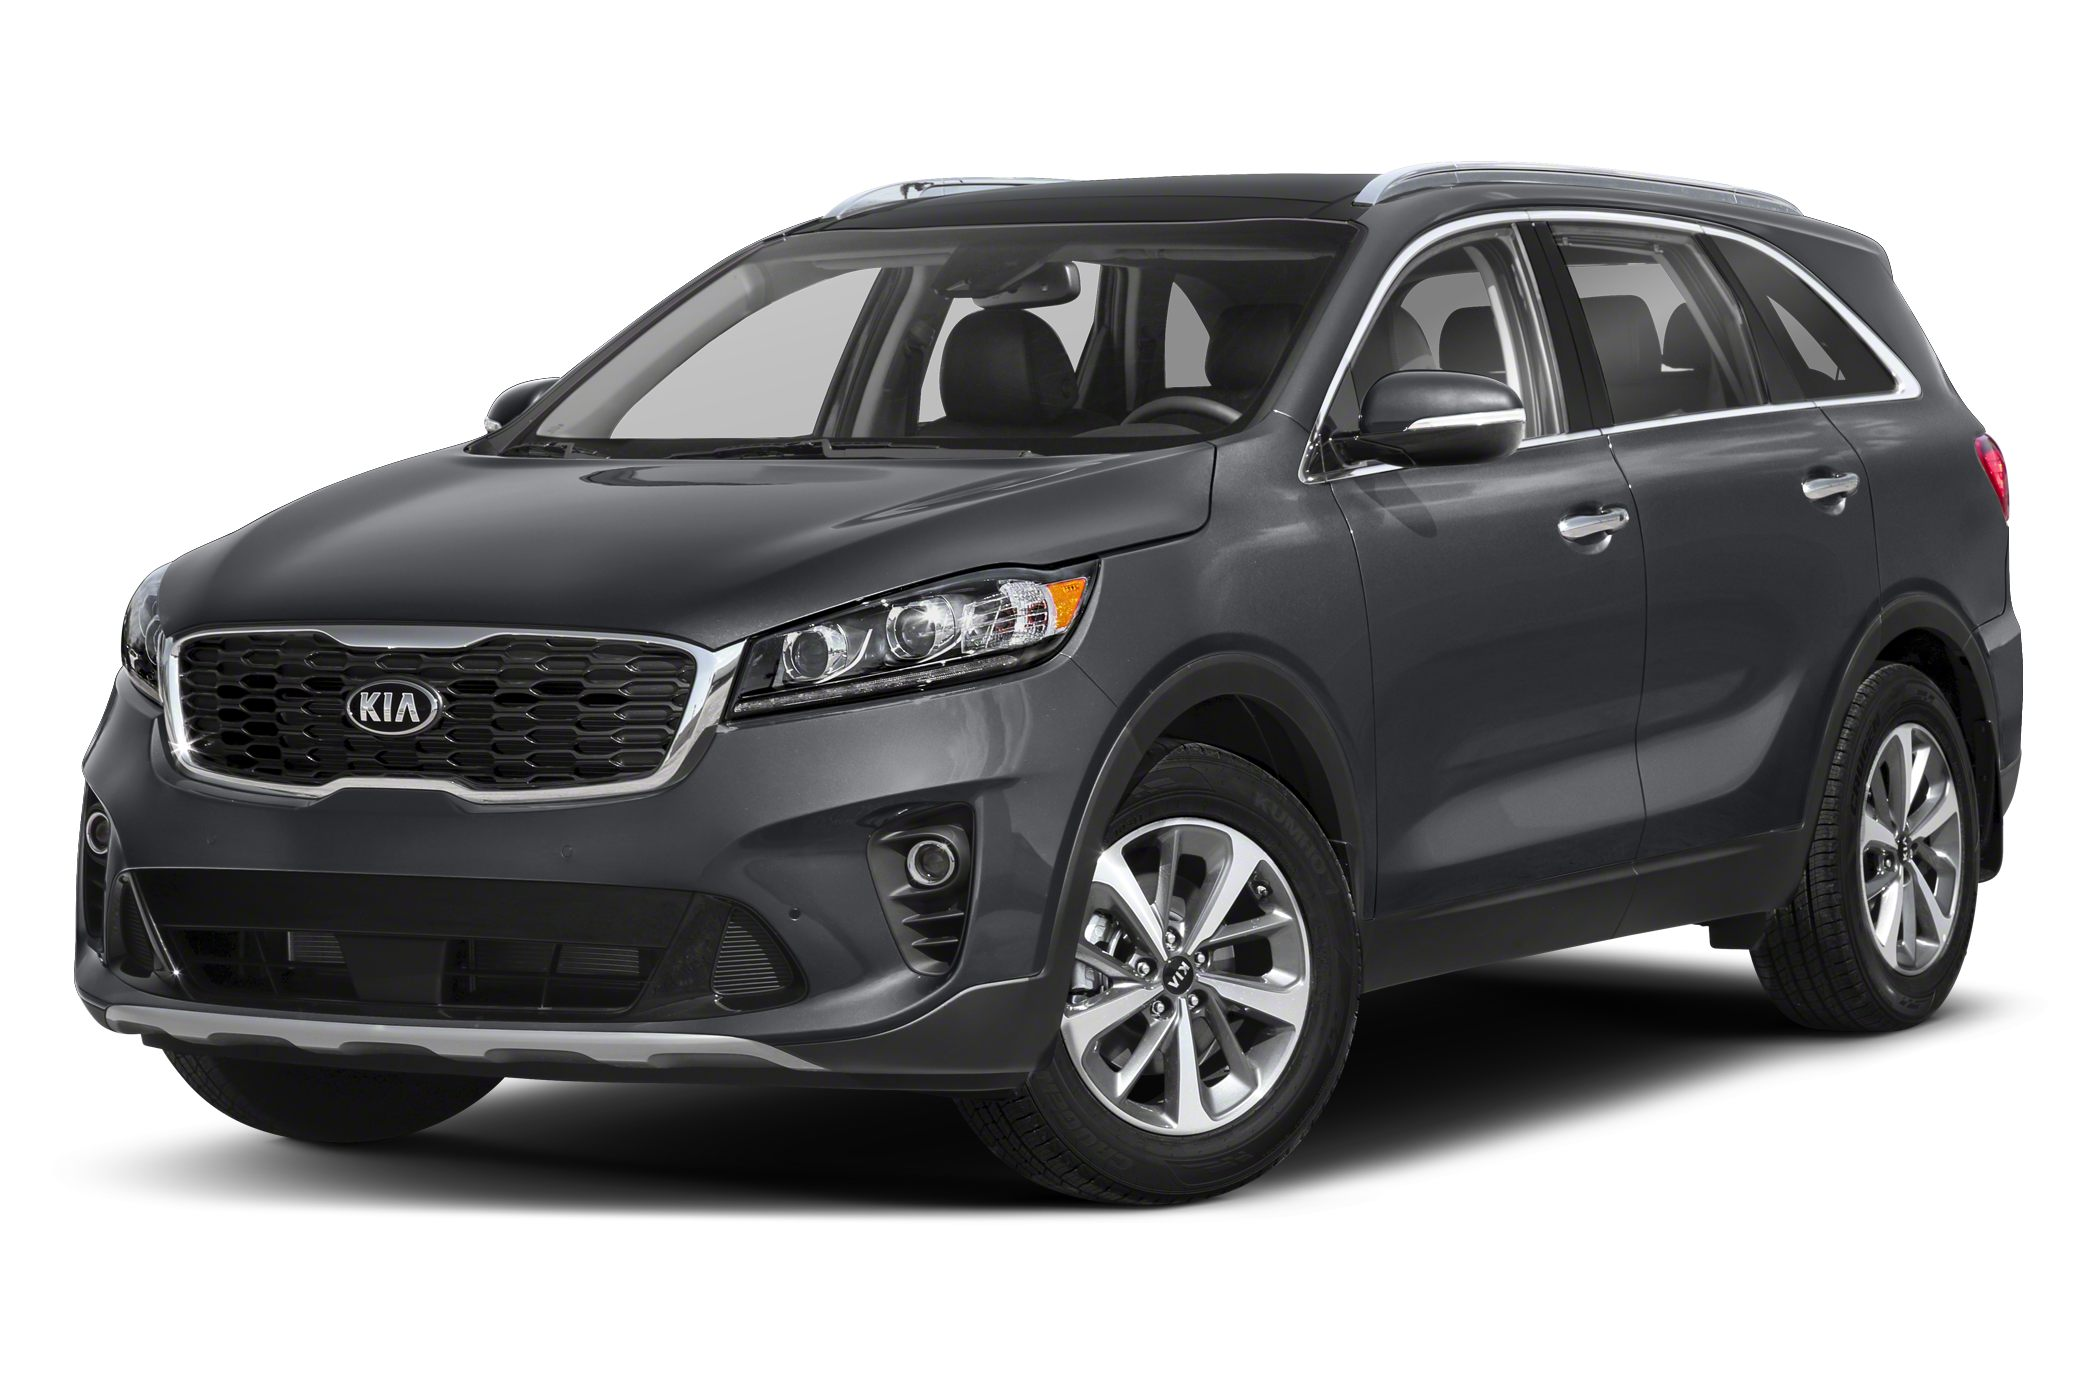 2019 Kia Sorento 24 LX Miles 11Color Brown Stock SB18302 VIN 5XYPG4A32KG435528